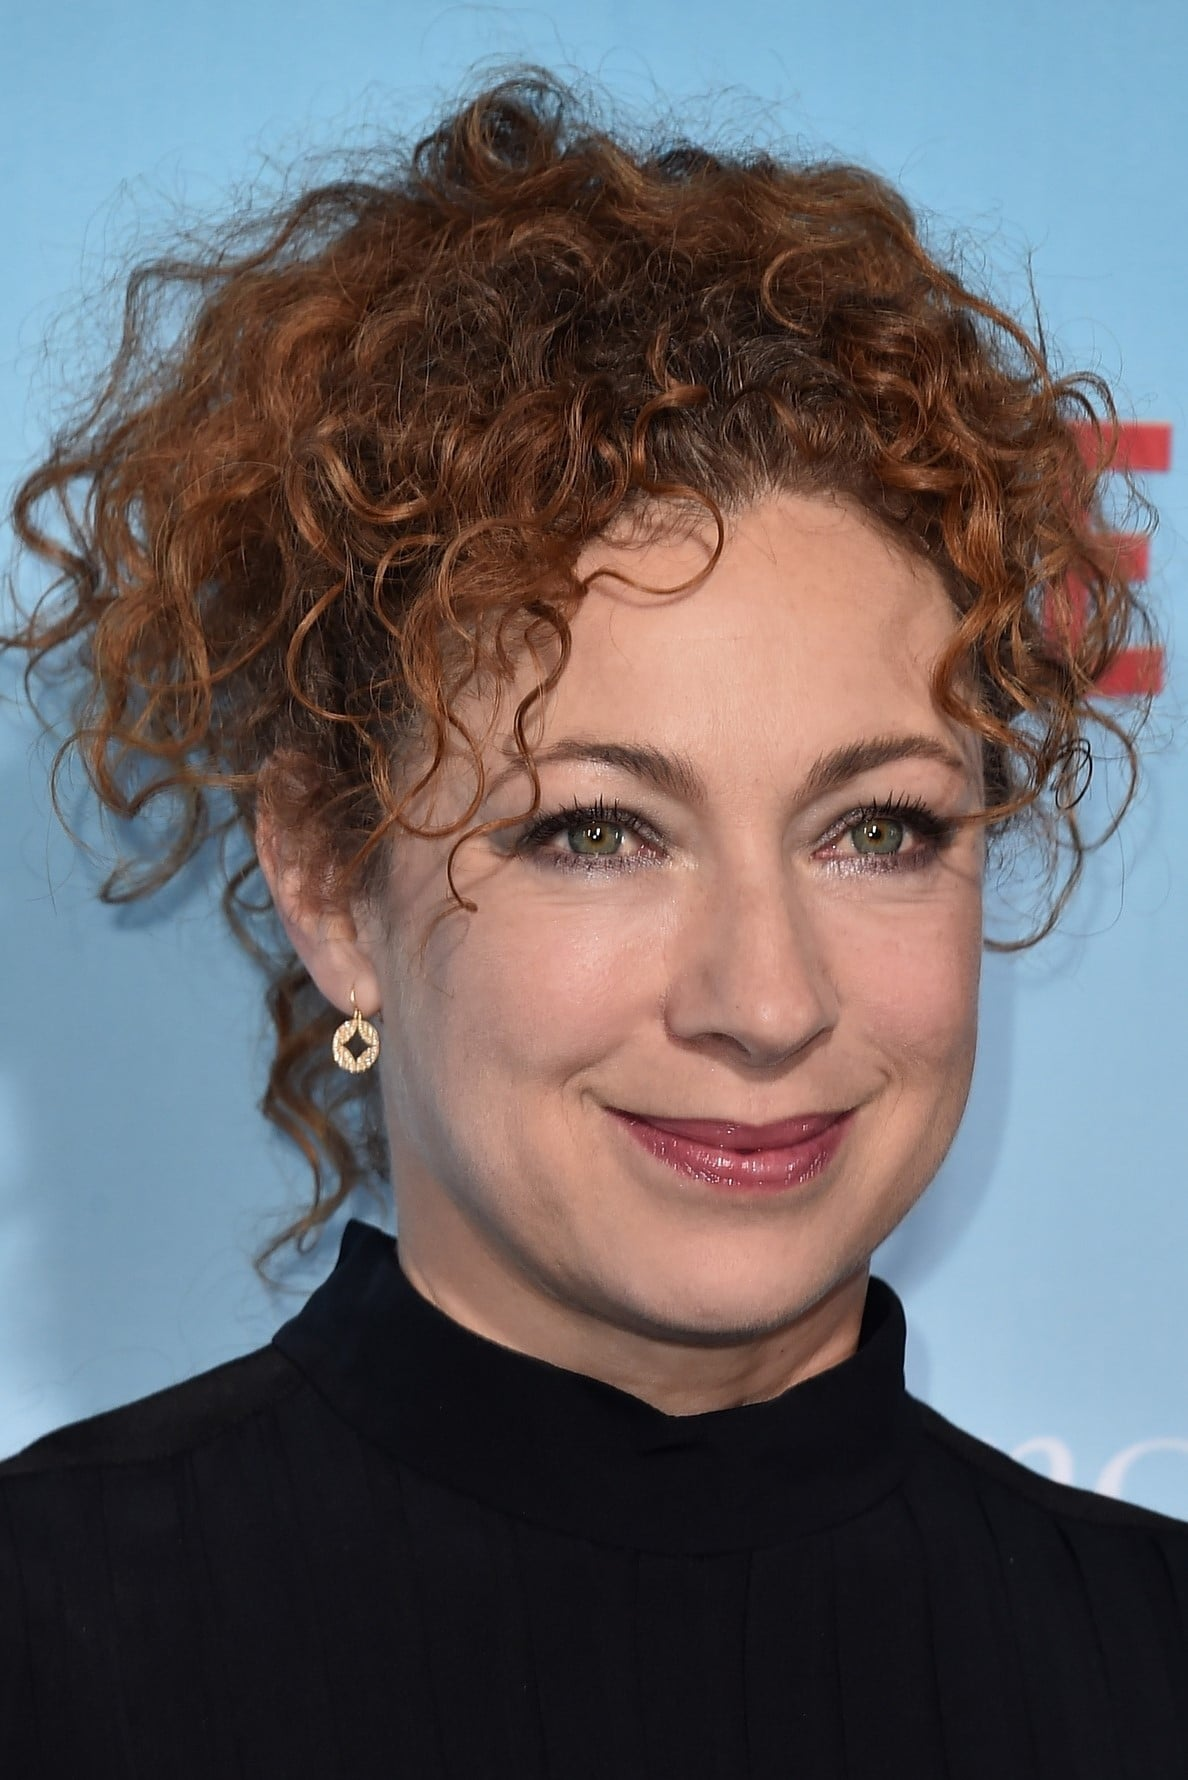 Alex kingston fortunes and misfortunes of moll flanders - 2 5